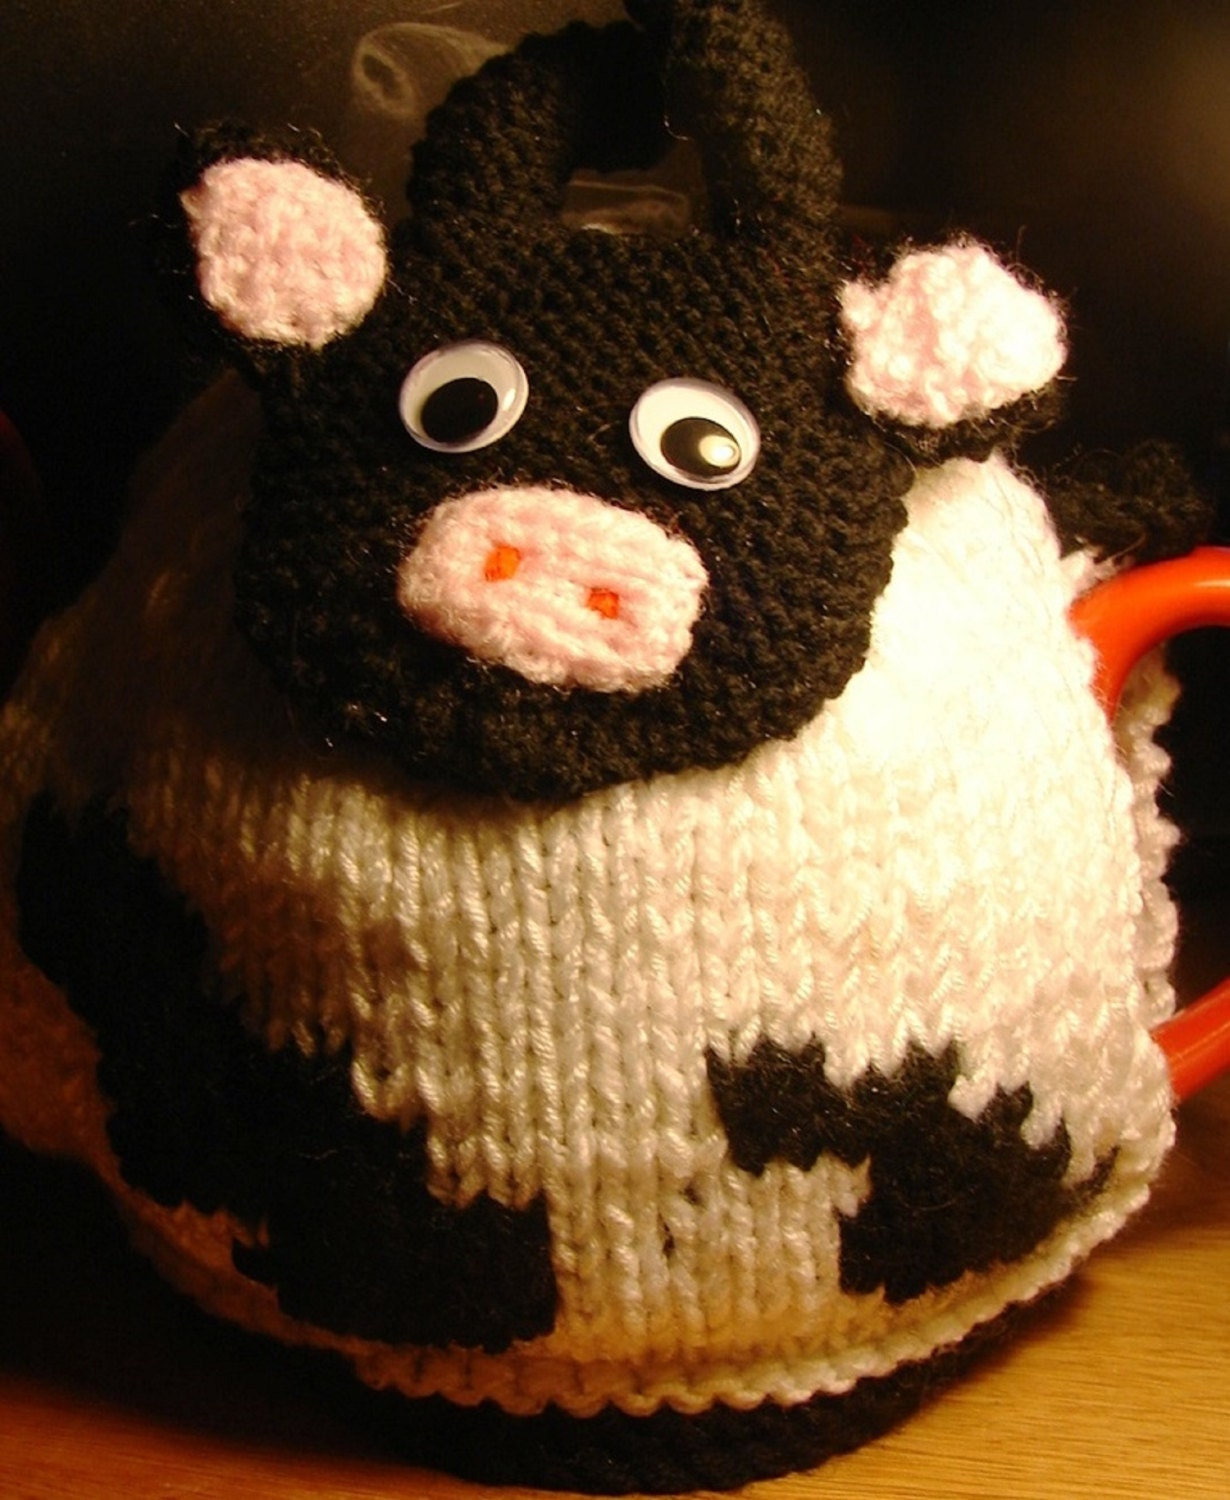 Knitting Pattern For Cow Tea Cosy : TEA COSY Knitting Pattern COW Tea Cosy by KnittingPatternShop